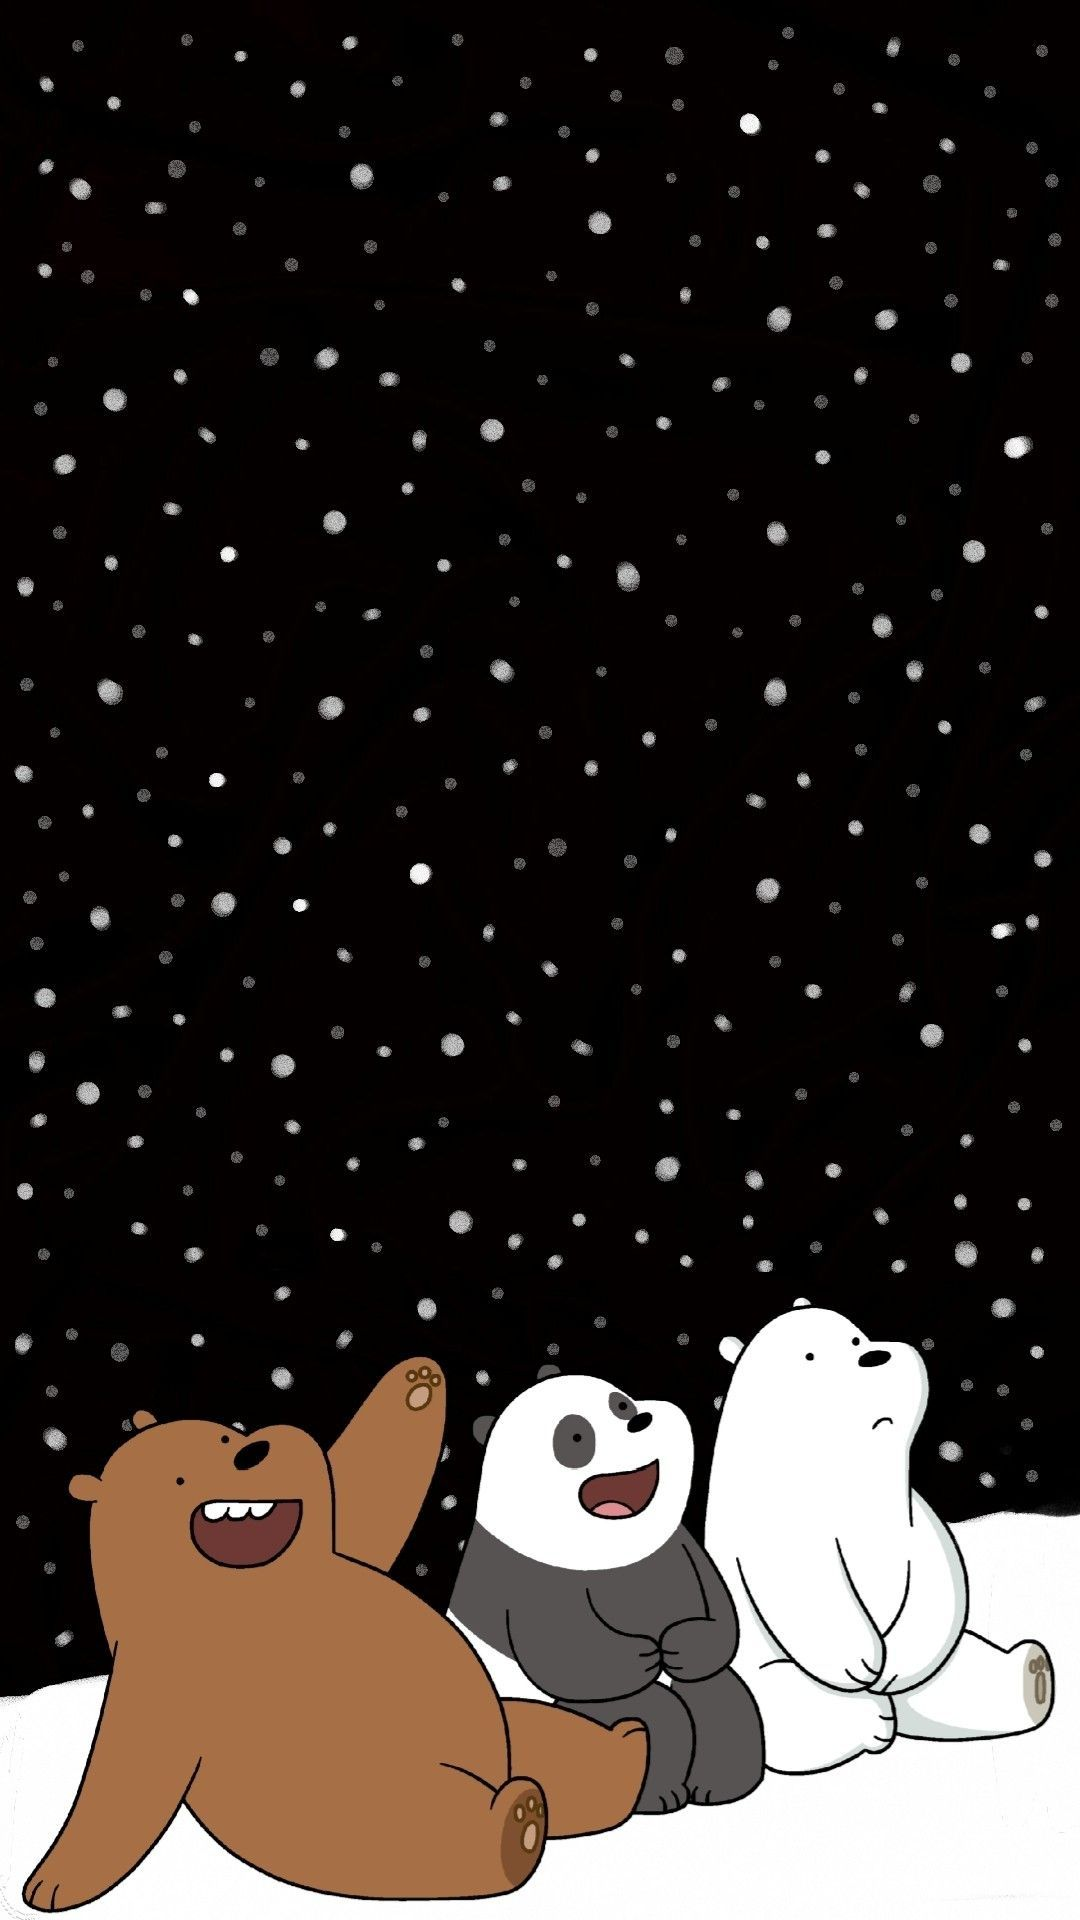 I Edited This We Bare Bears Picture And Put In A Little Inside We Bare Bears Christmas Wallpaper Di 2020 Ilustrasi Poster Lukisan Disney Boneka Hewan